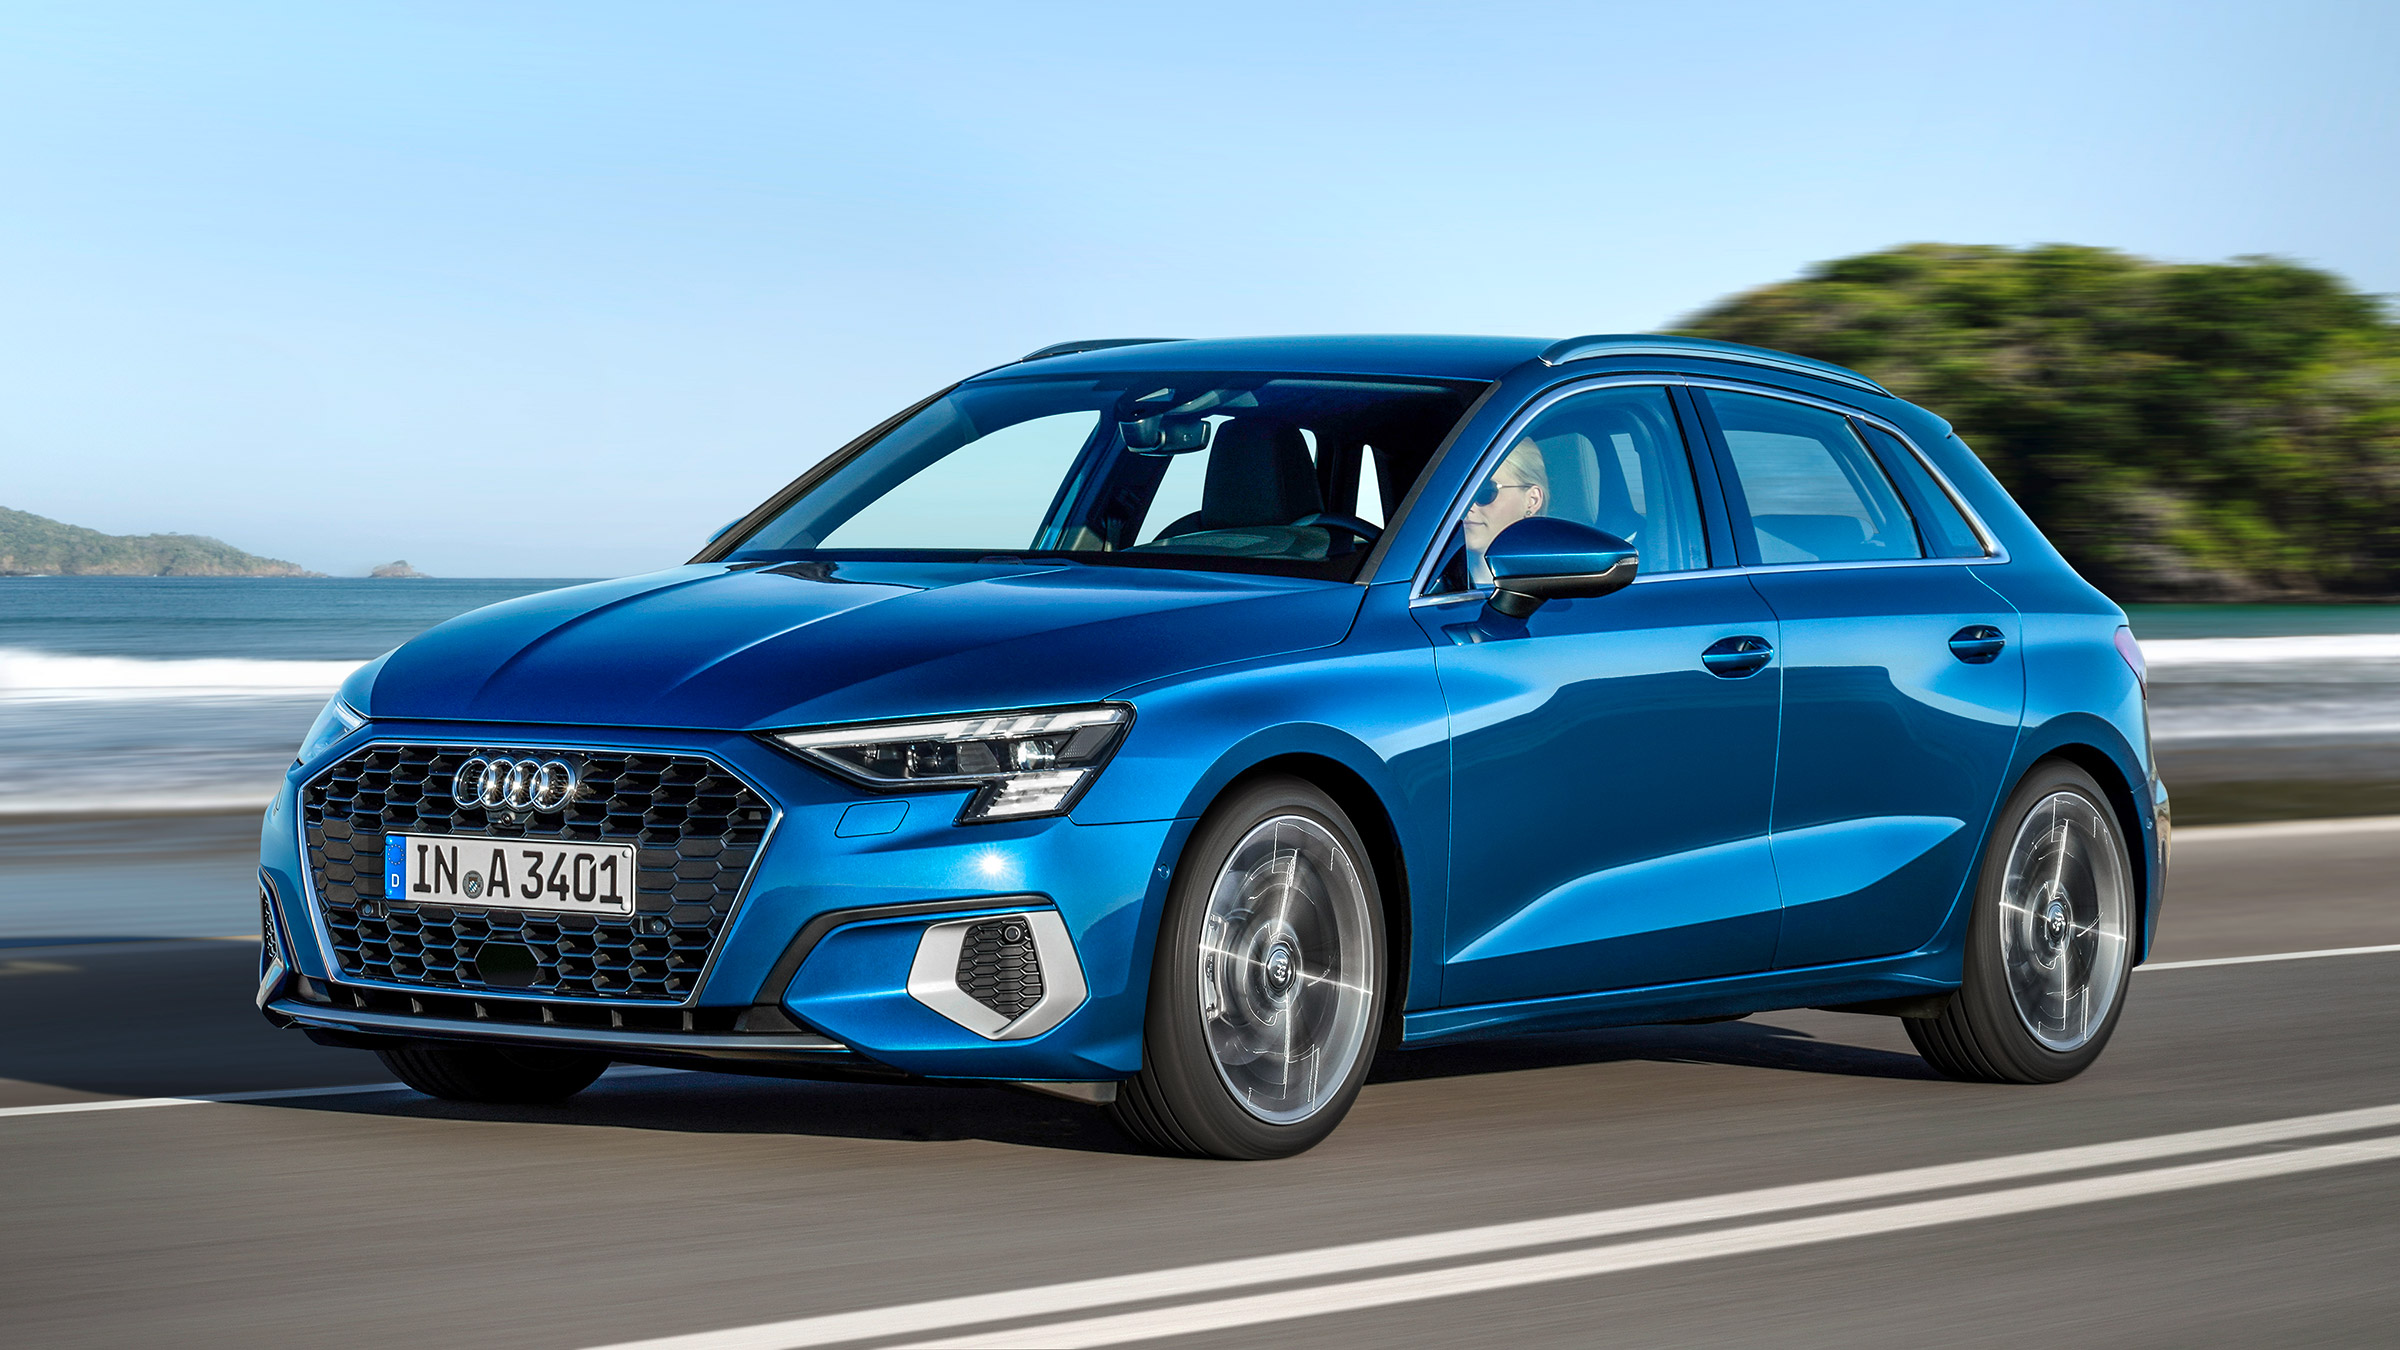 New 2020 Audi A3 Prices And Specs Confirmed Auto Express